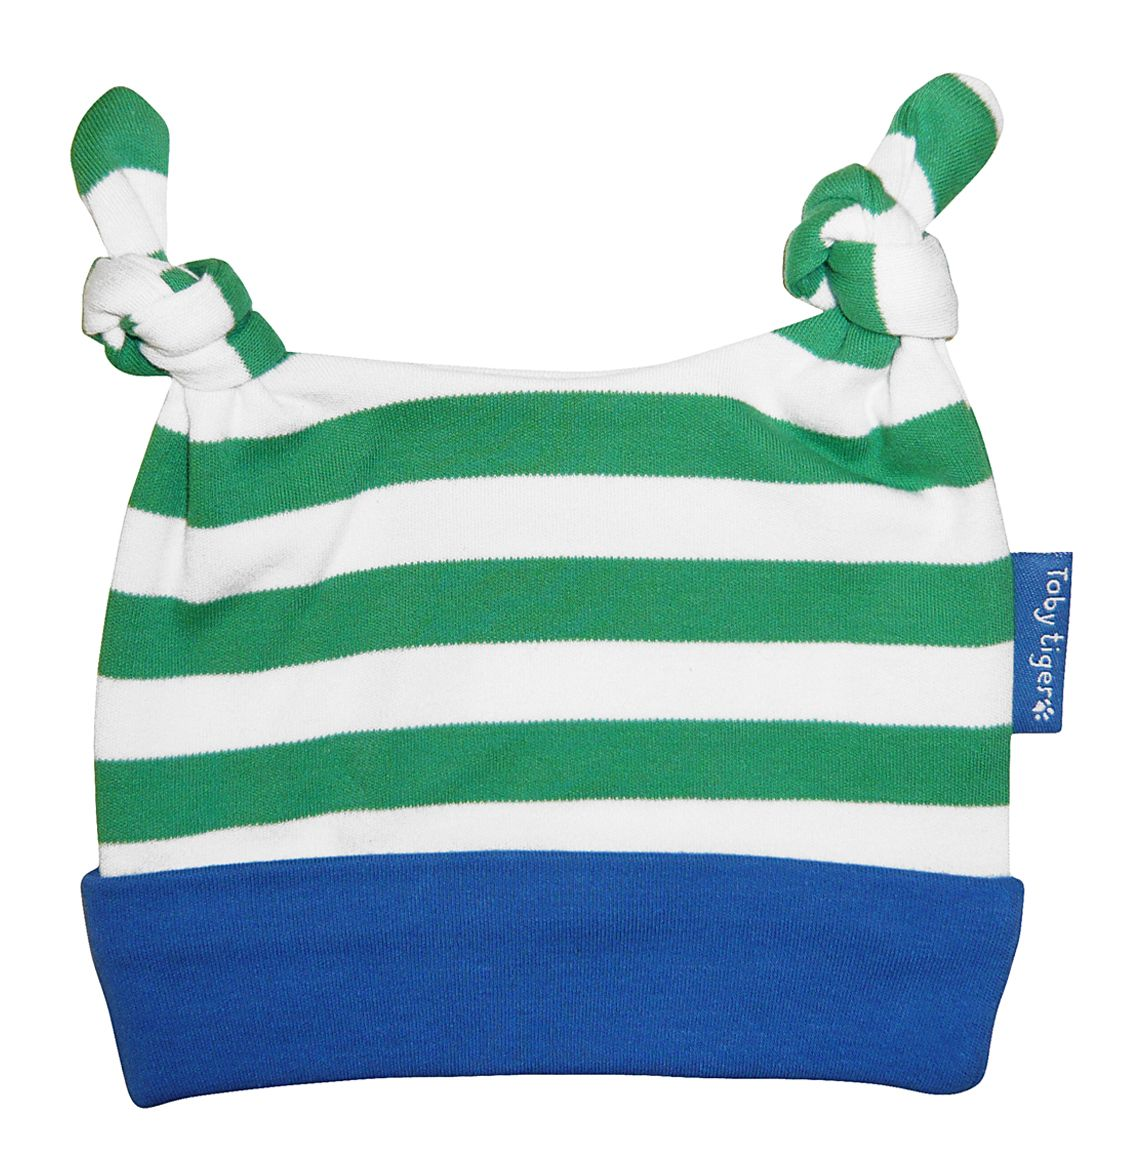 Toby Tiger Boys organic cotton knot hat, Green